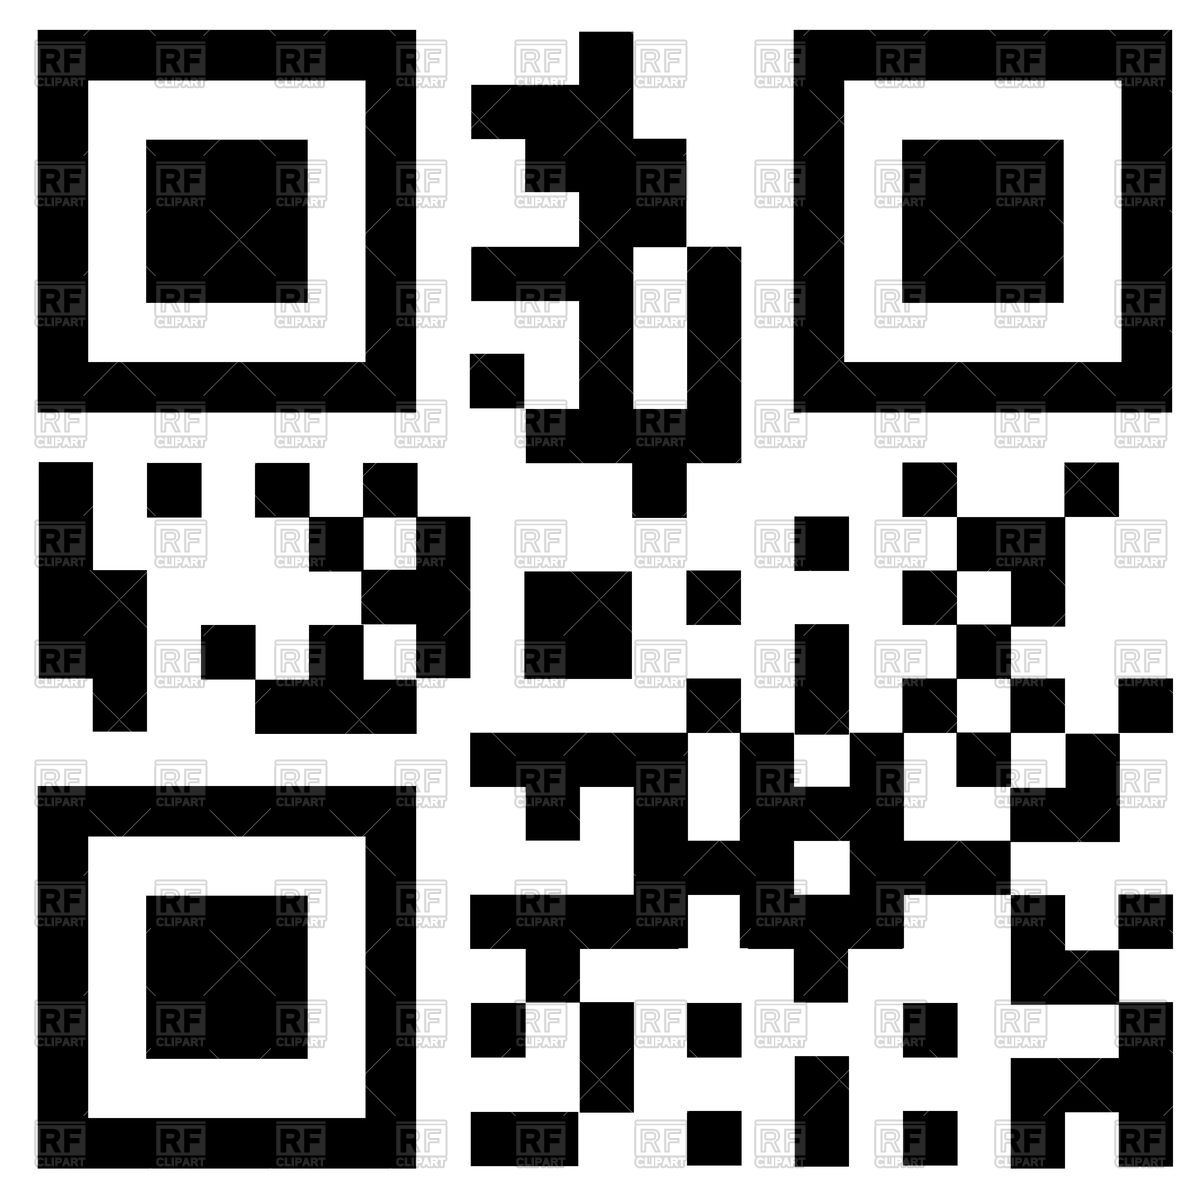 Qr code clipart 20 free Cliparts | Download images on ...